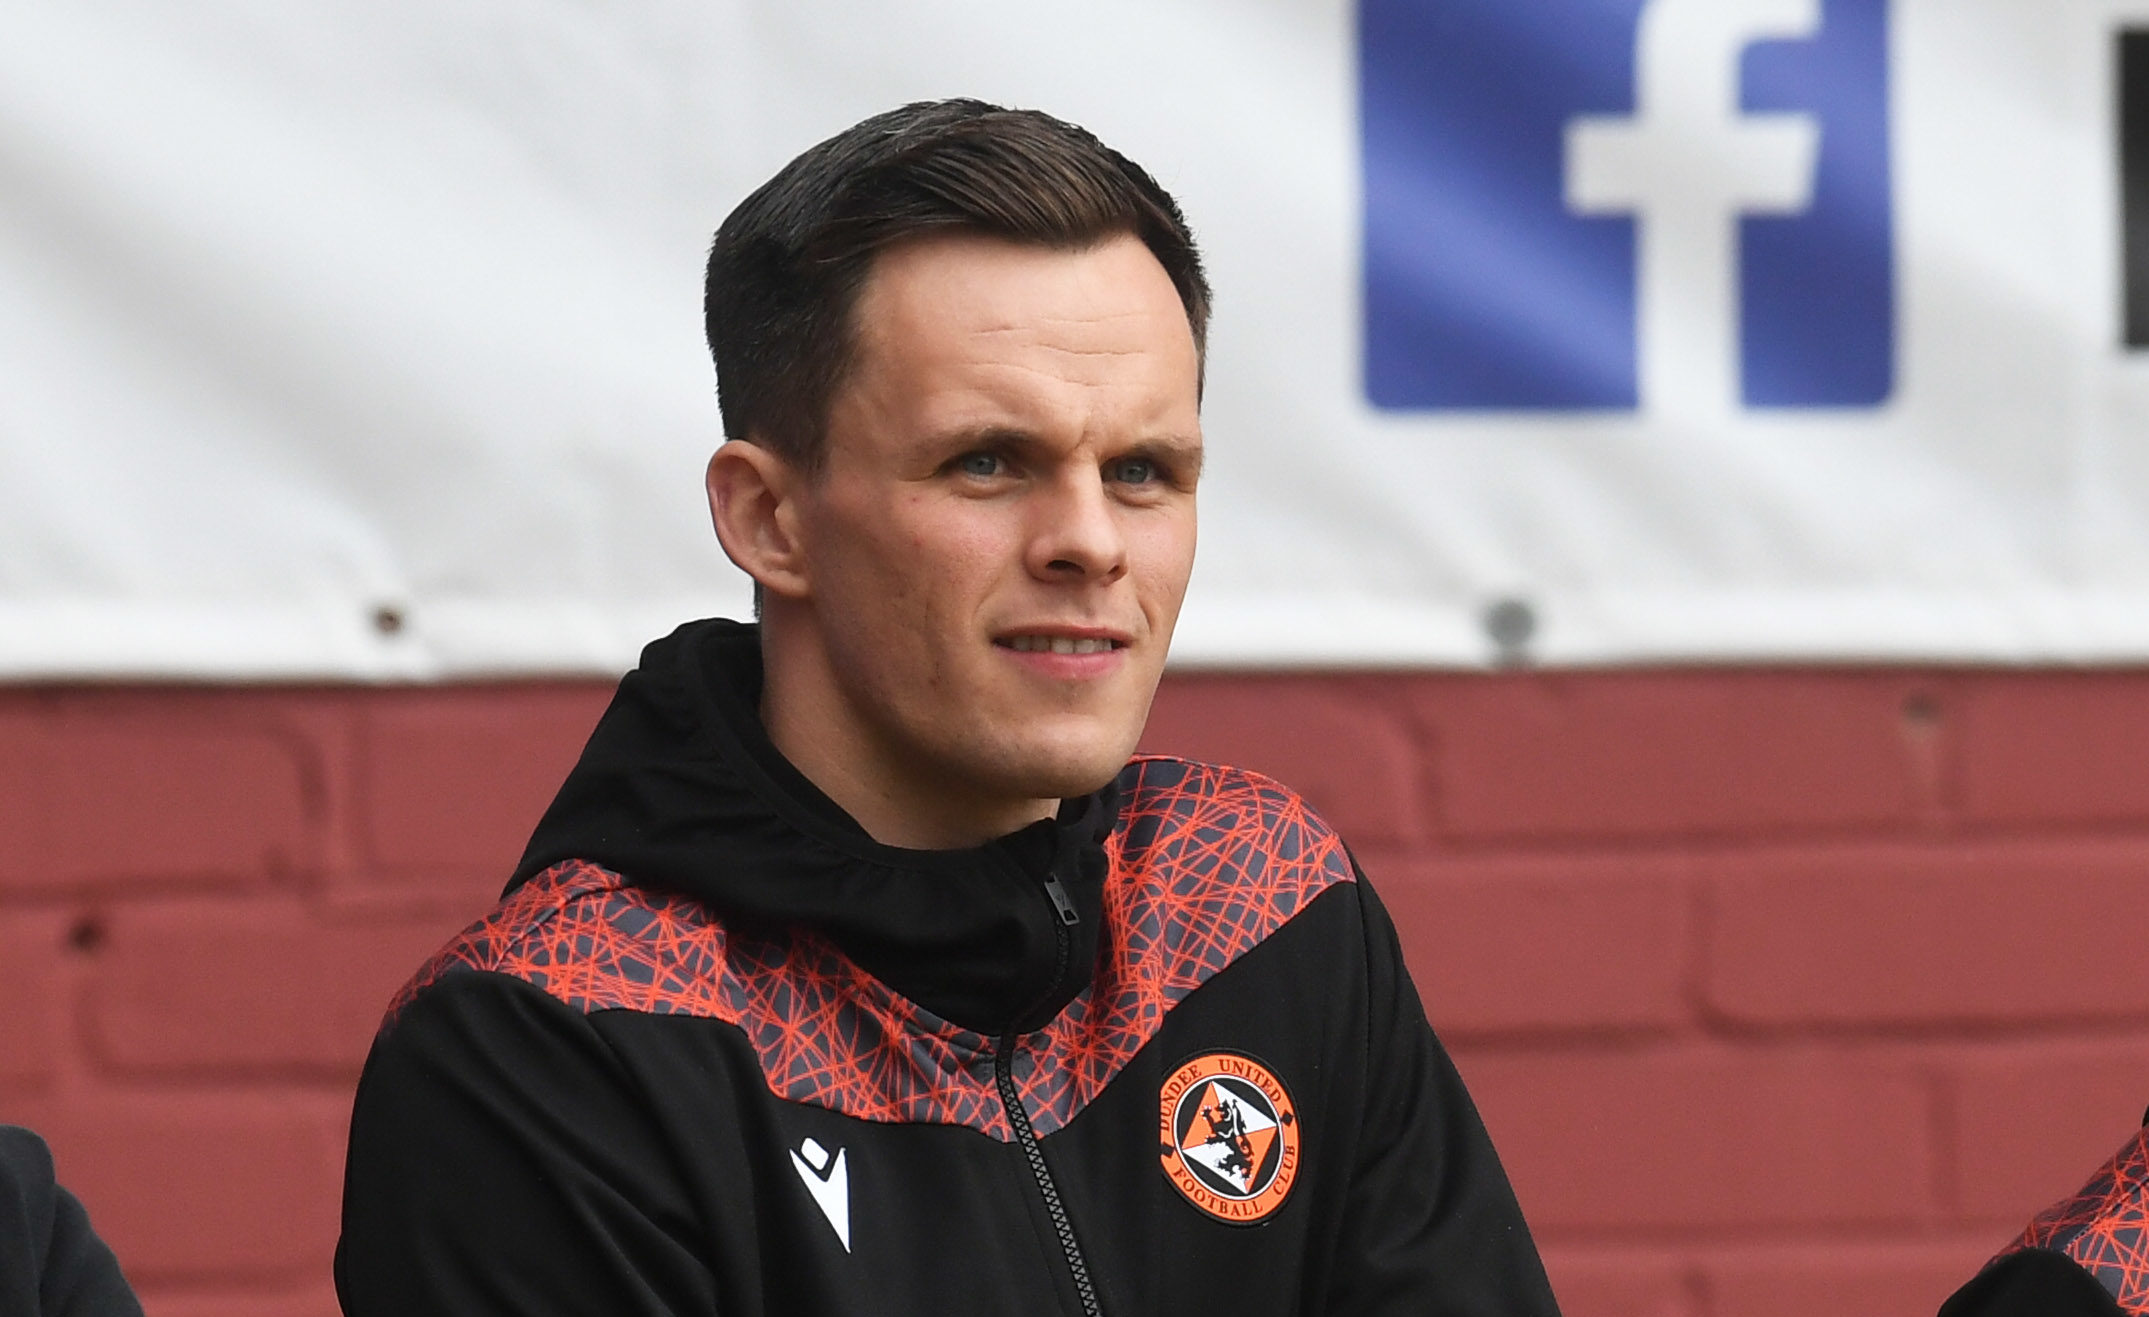 Lawrence Shankland was the Championship's top scorer in 2019/20.